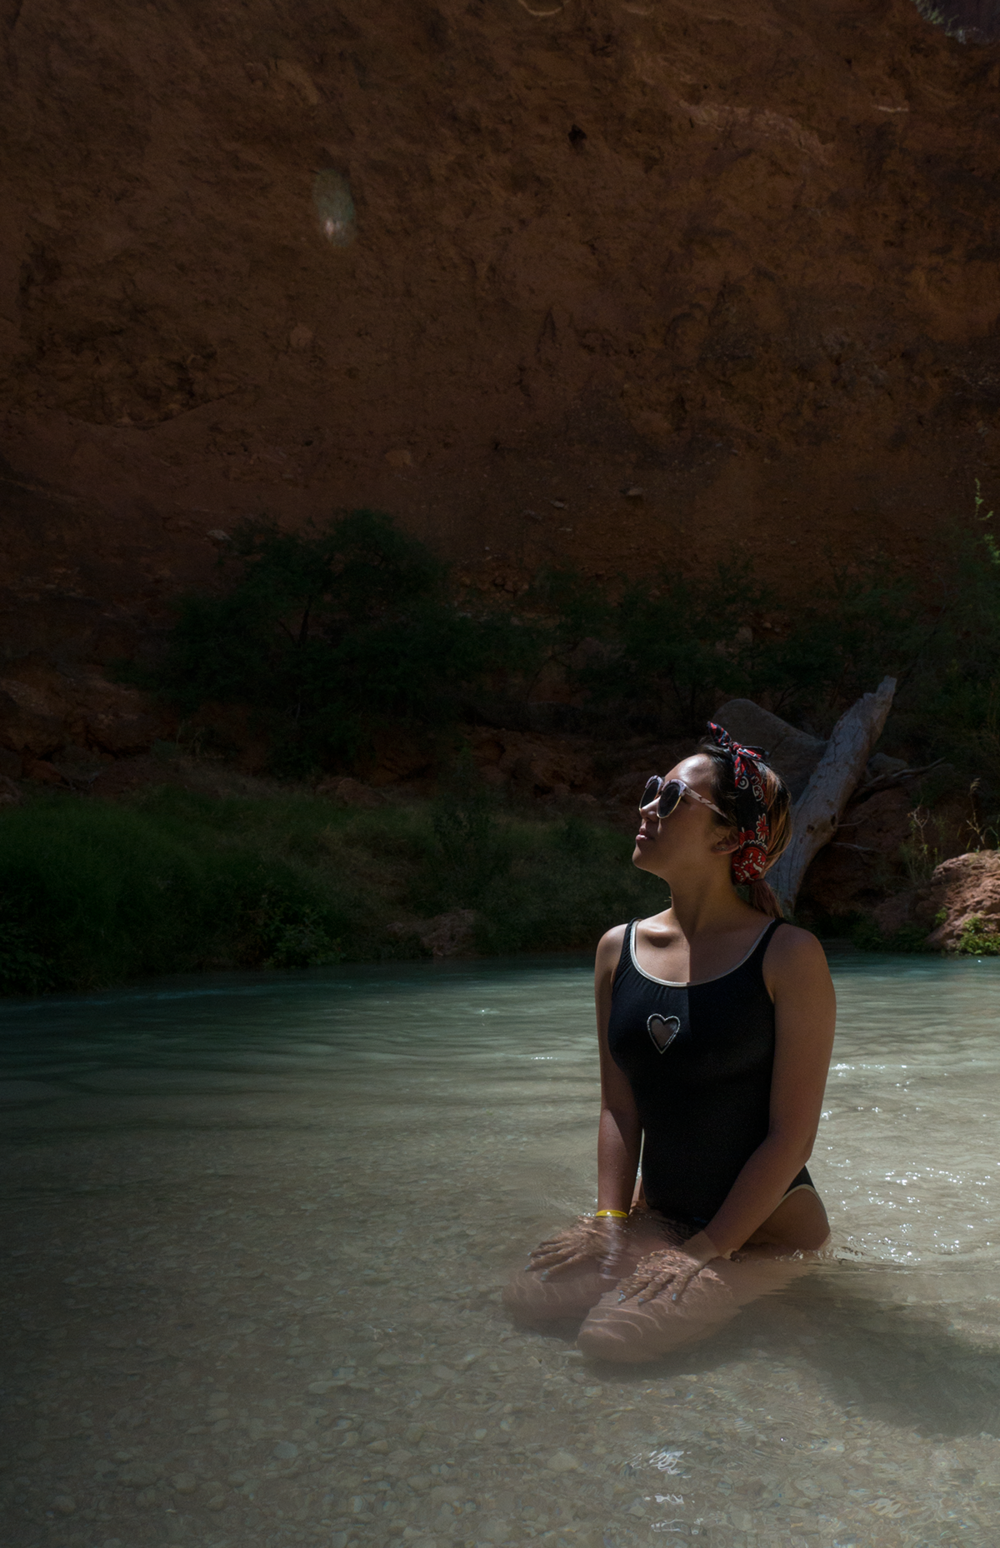 Anna Sohee Lee Modelling near Beaver Fall in Havasupai Arizona. Copyright Hobo.Life